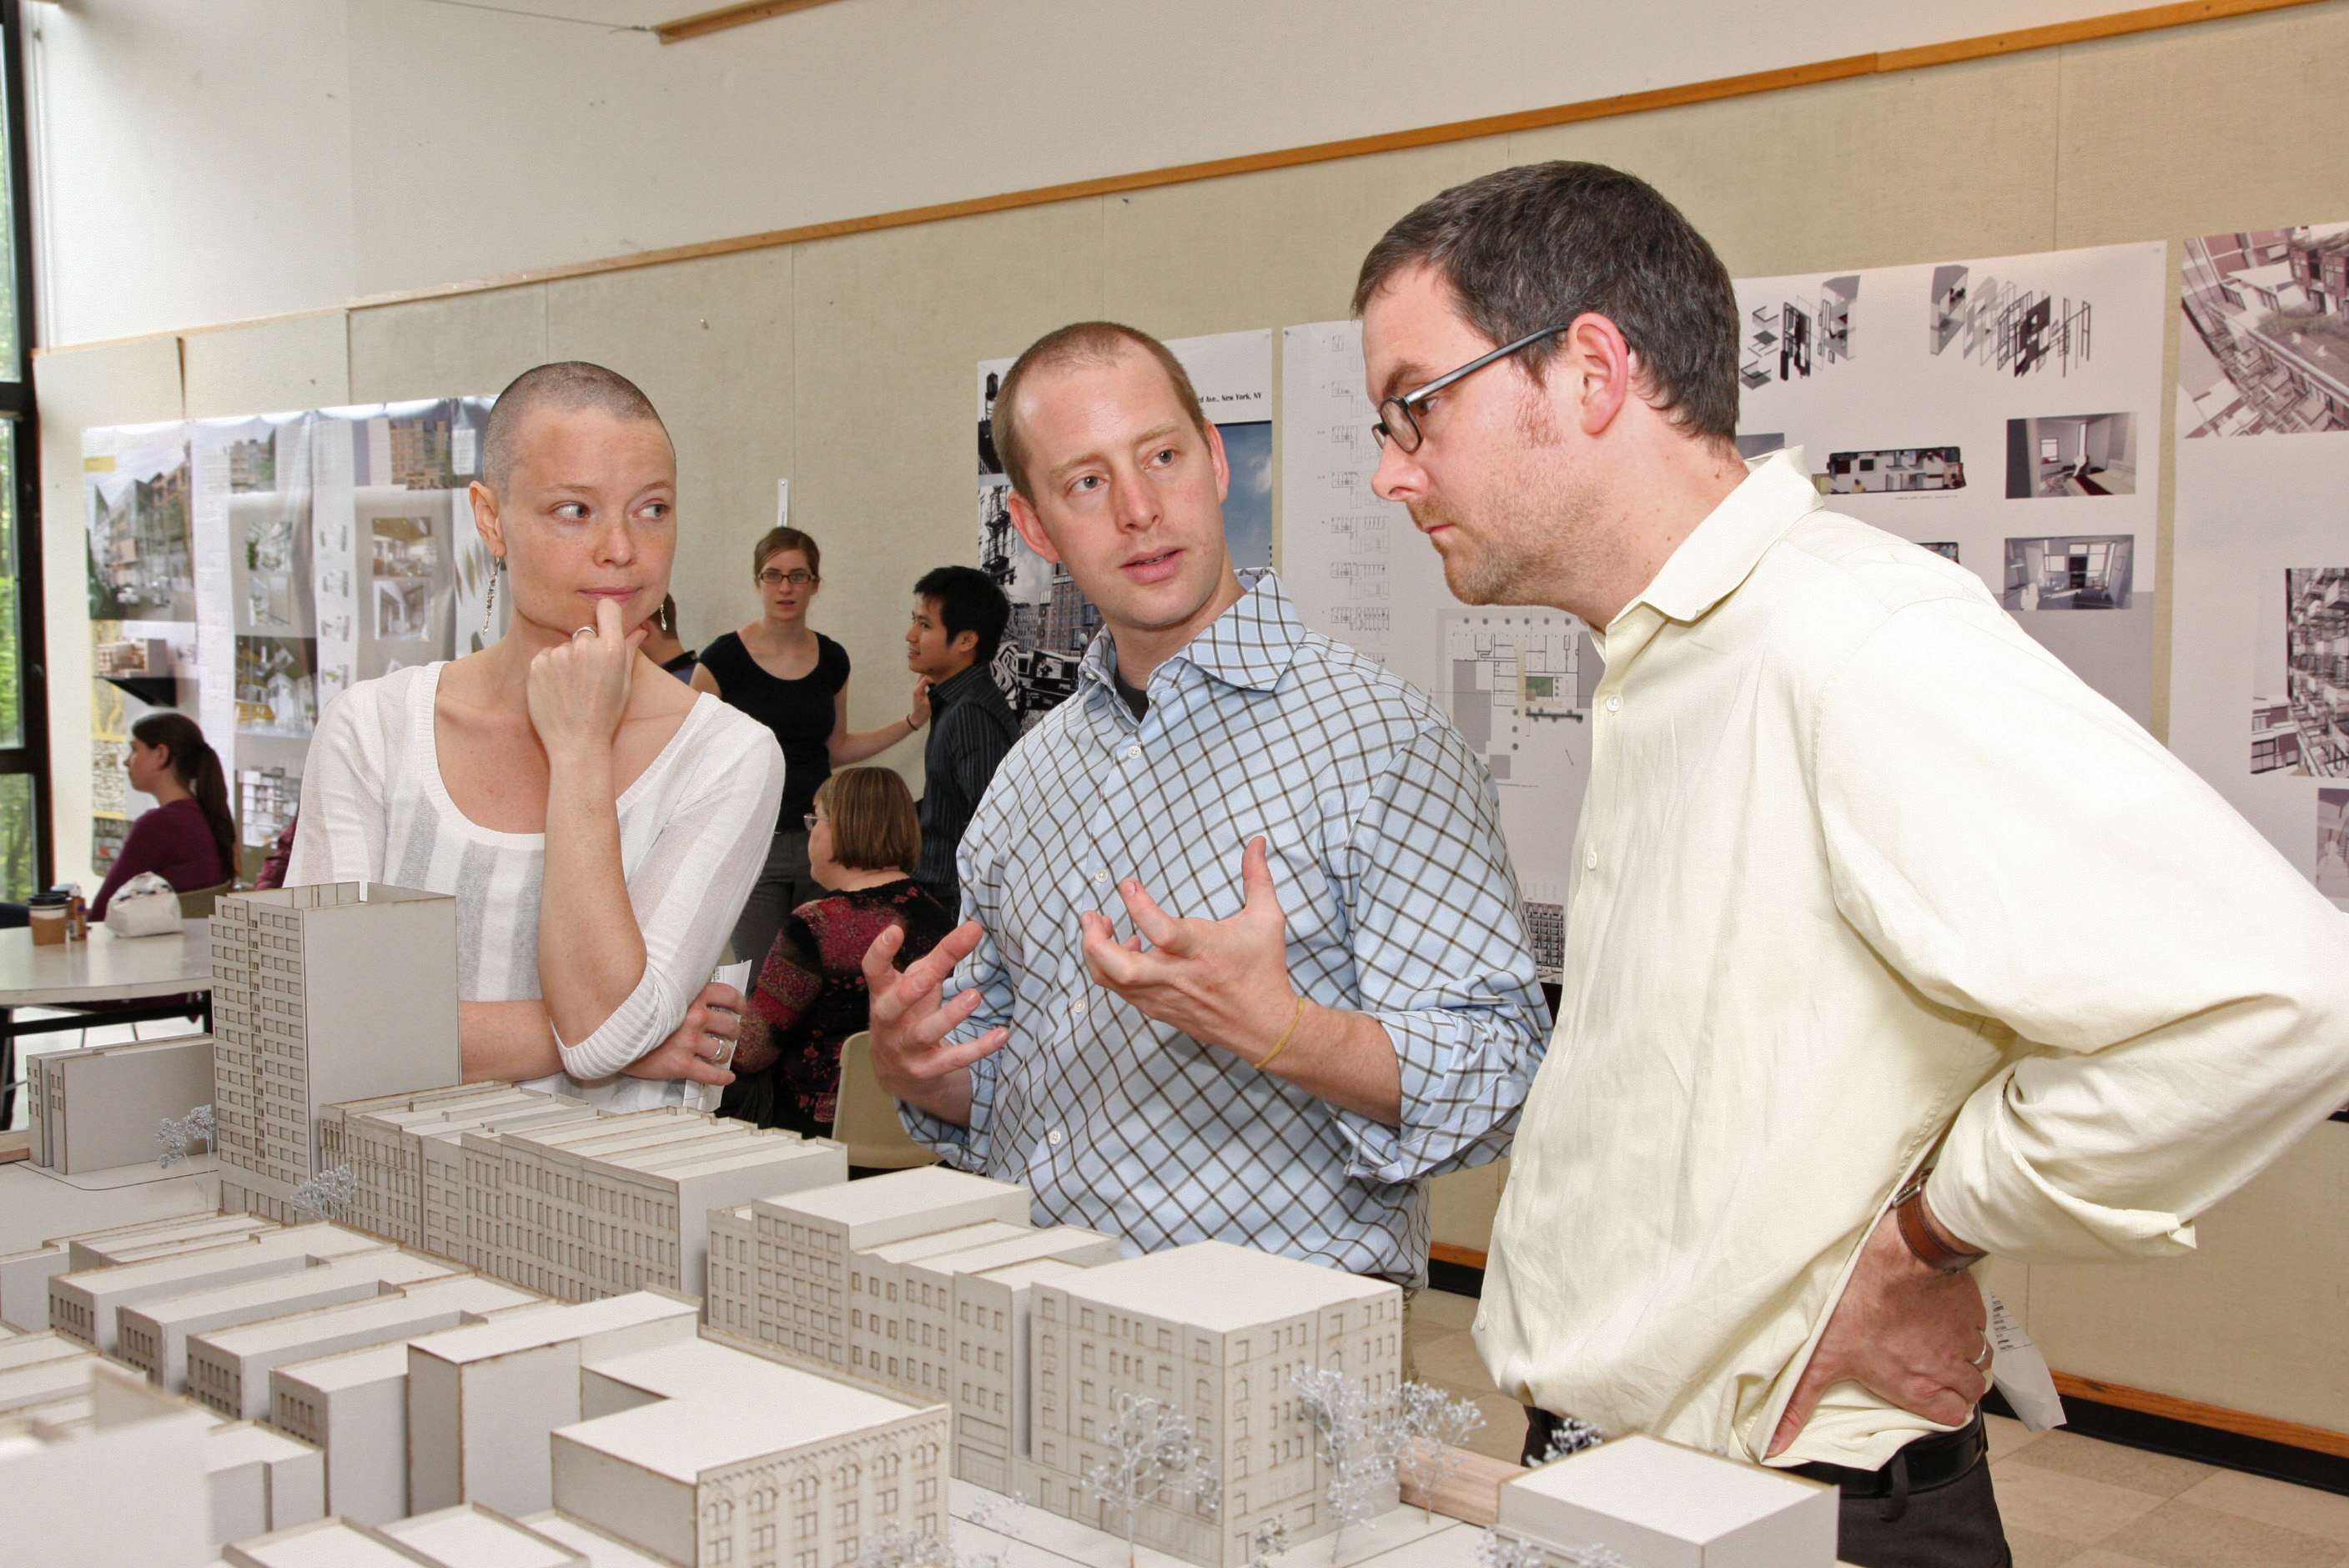 Faculty and students reviewing architectural designs and building models